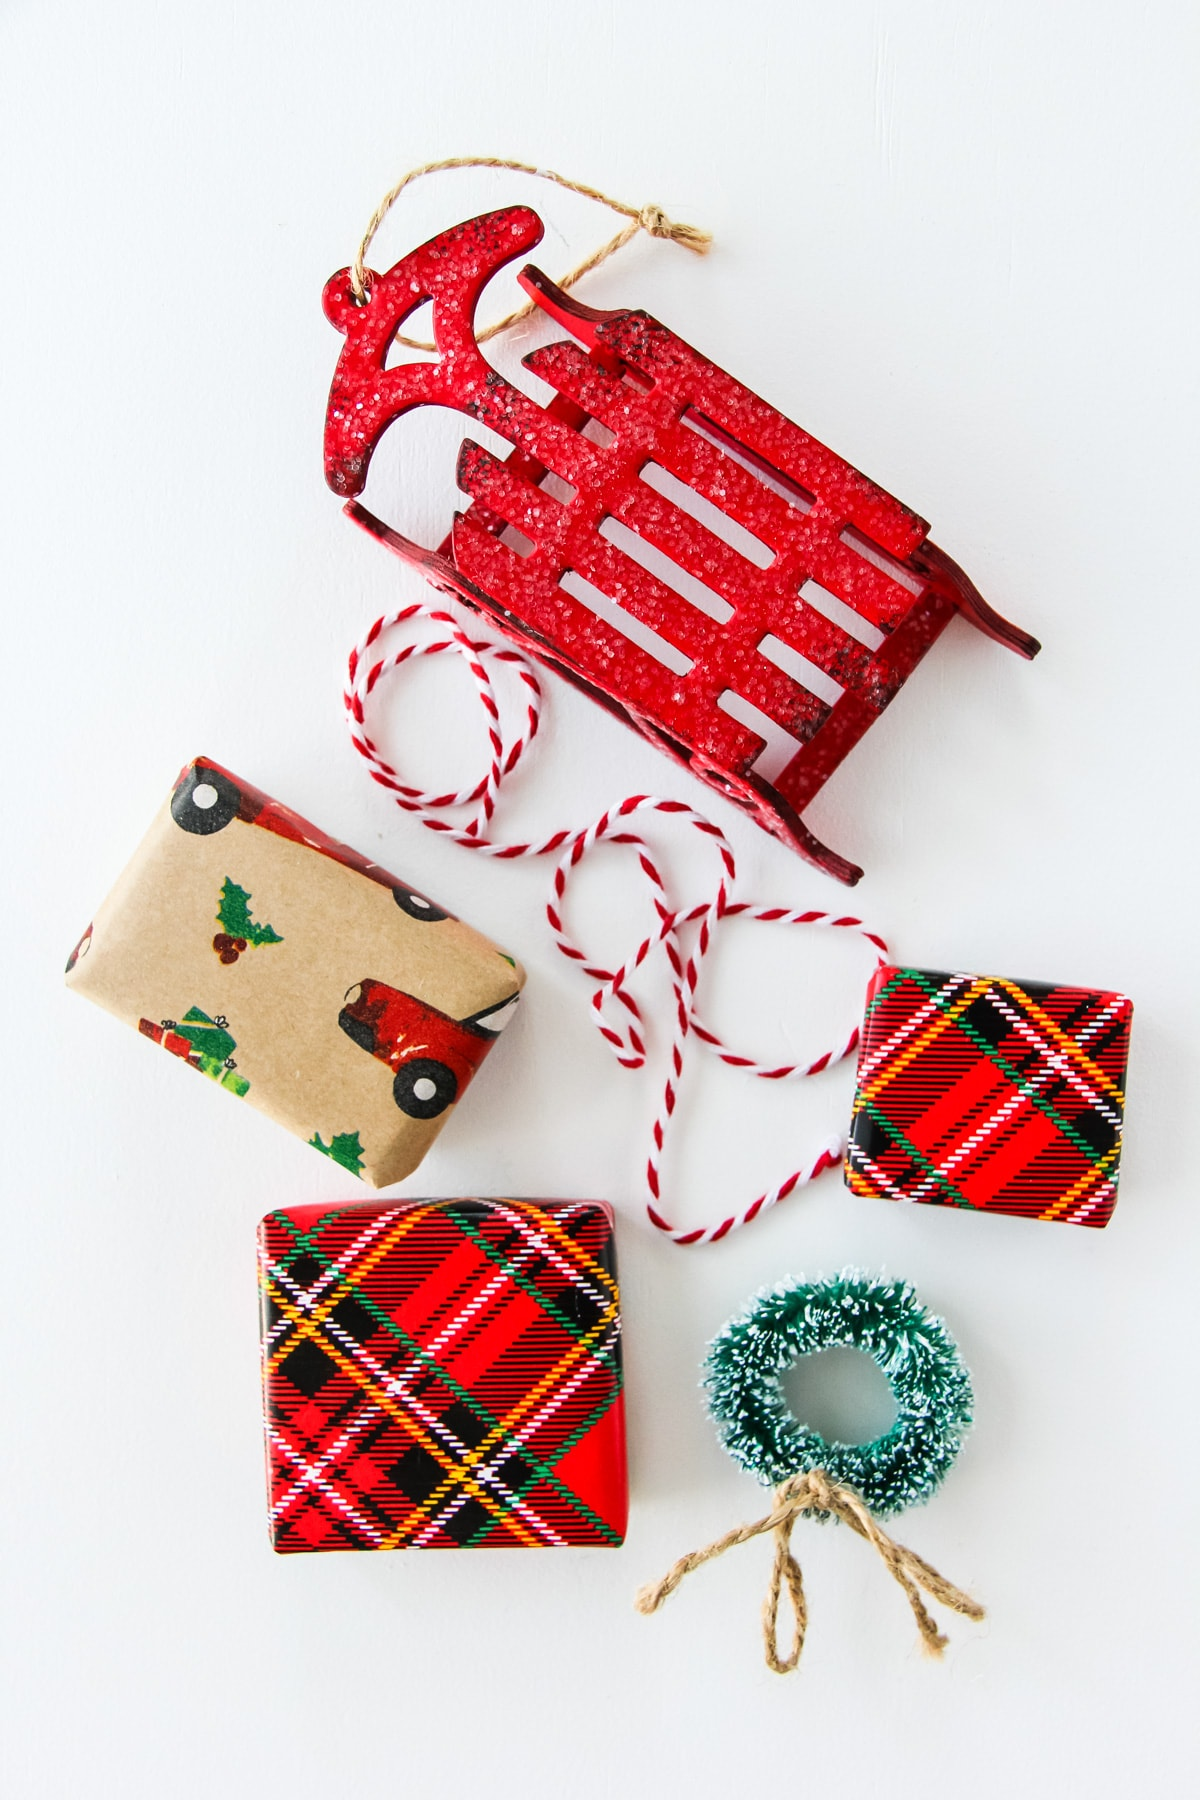 an image of a mini red sleigh, three wrapped gifts, a mini green wreath, a piece of red and white string